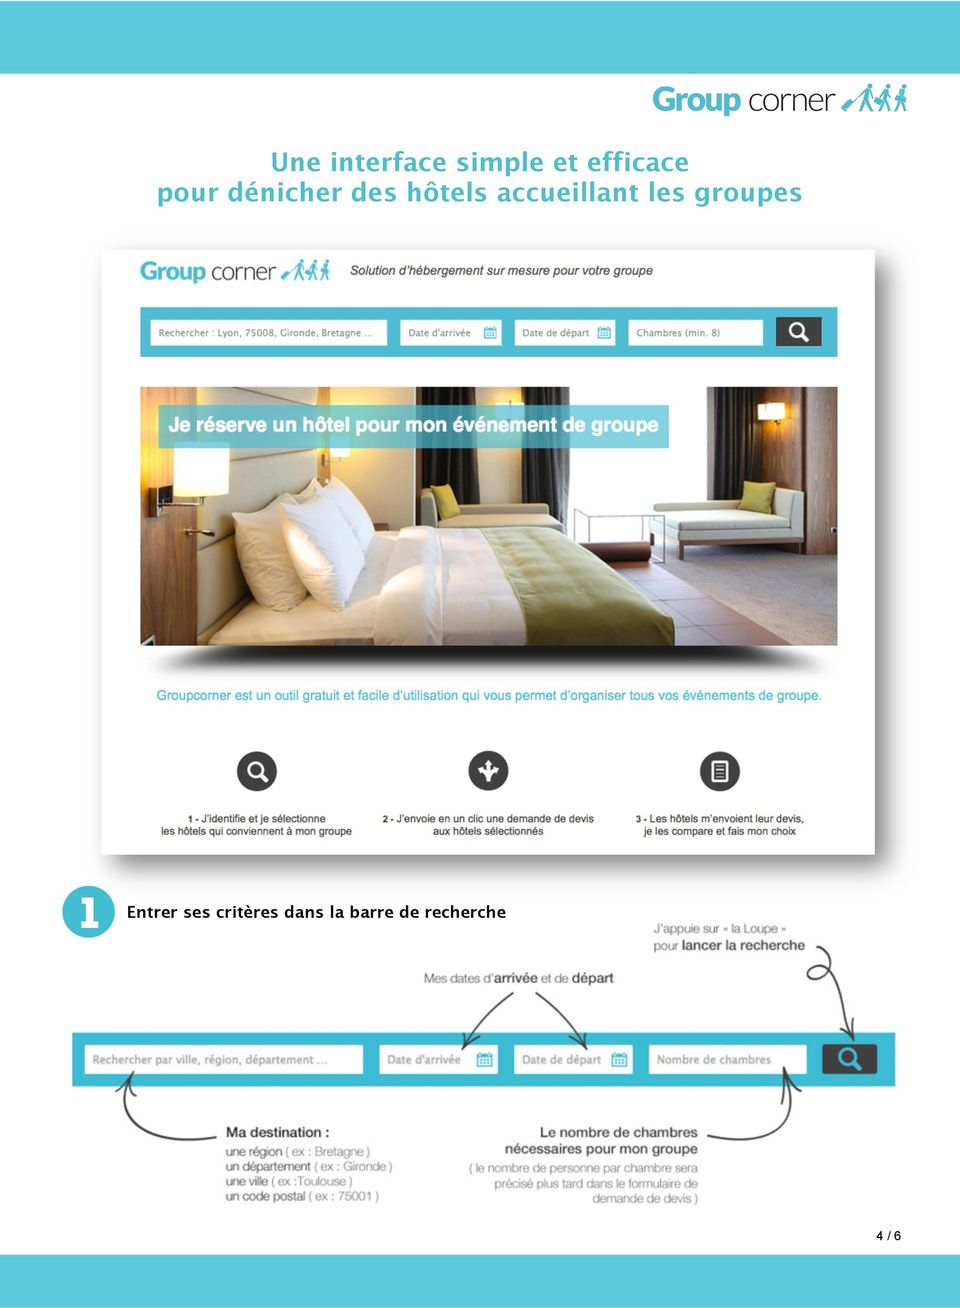 accuillant l group Entrr